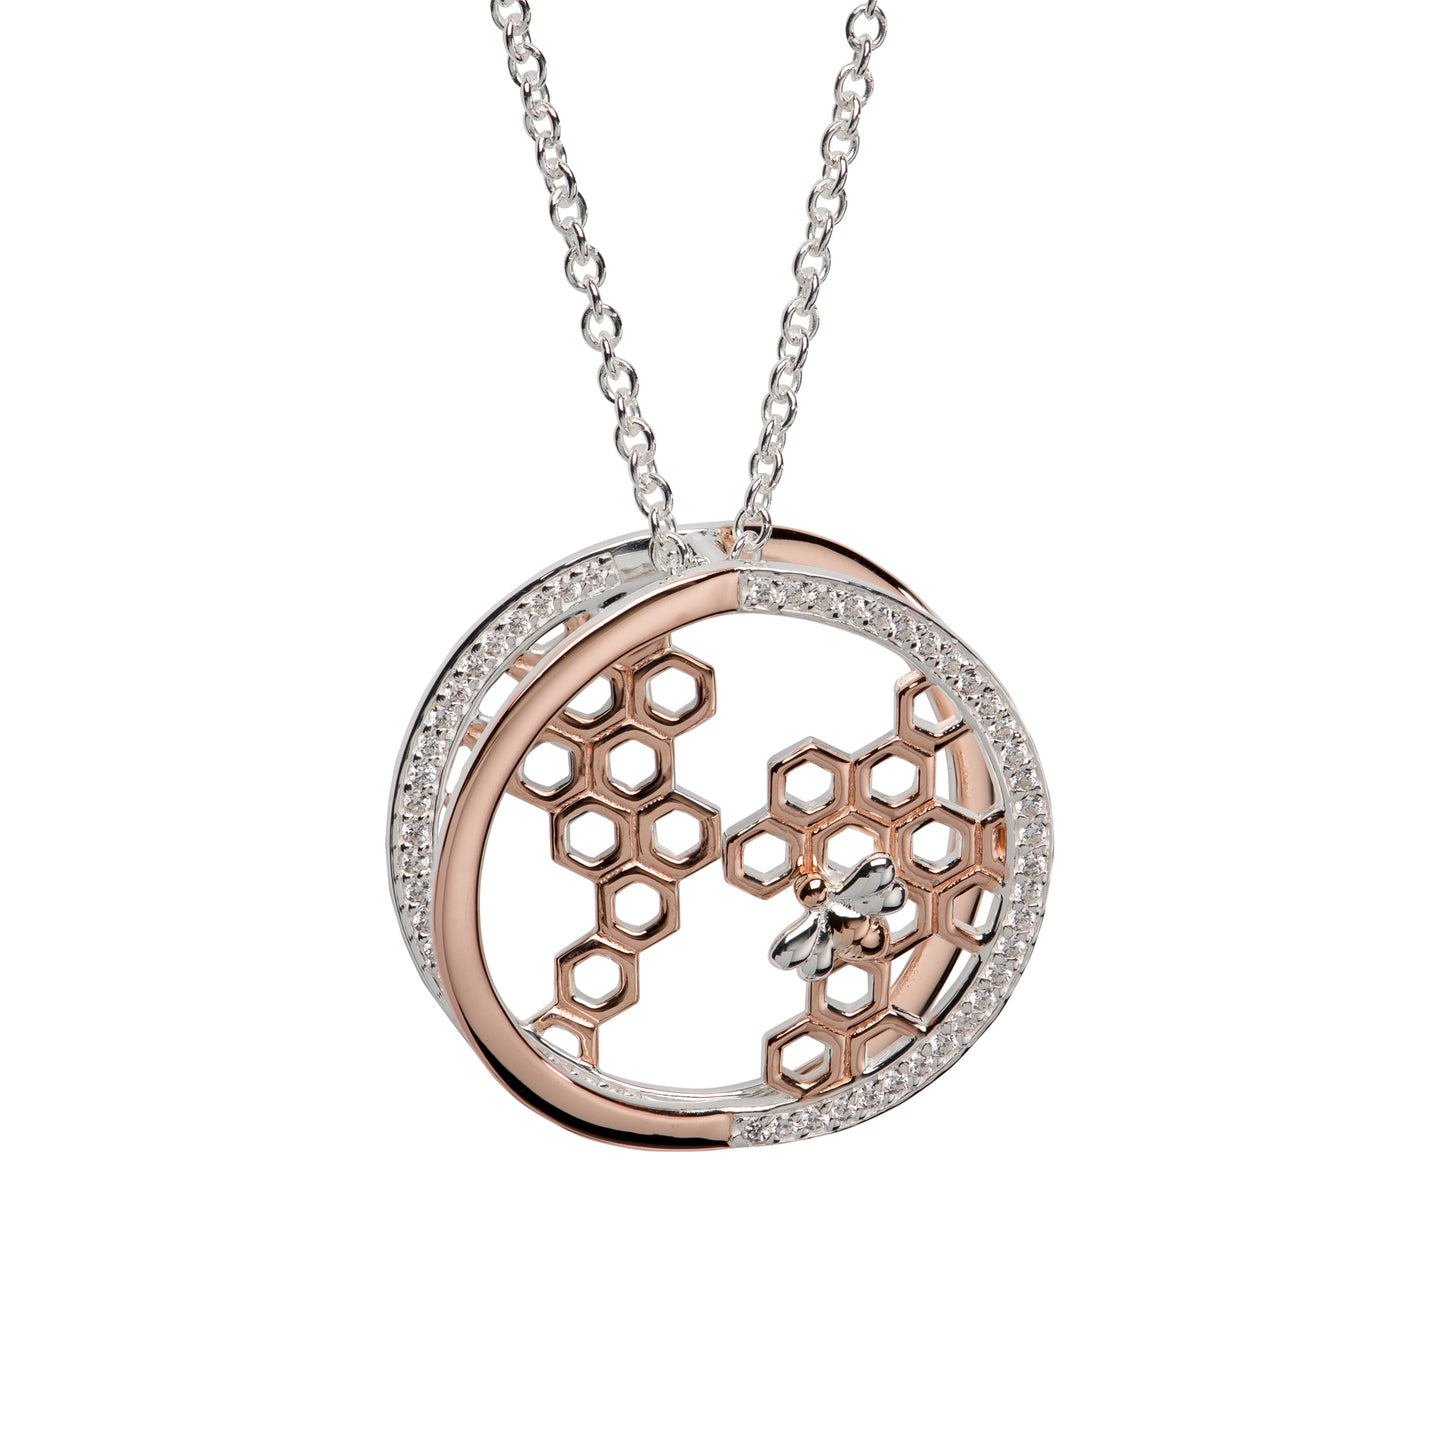 3D Honeycomb Pendant with Chain MK-780